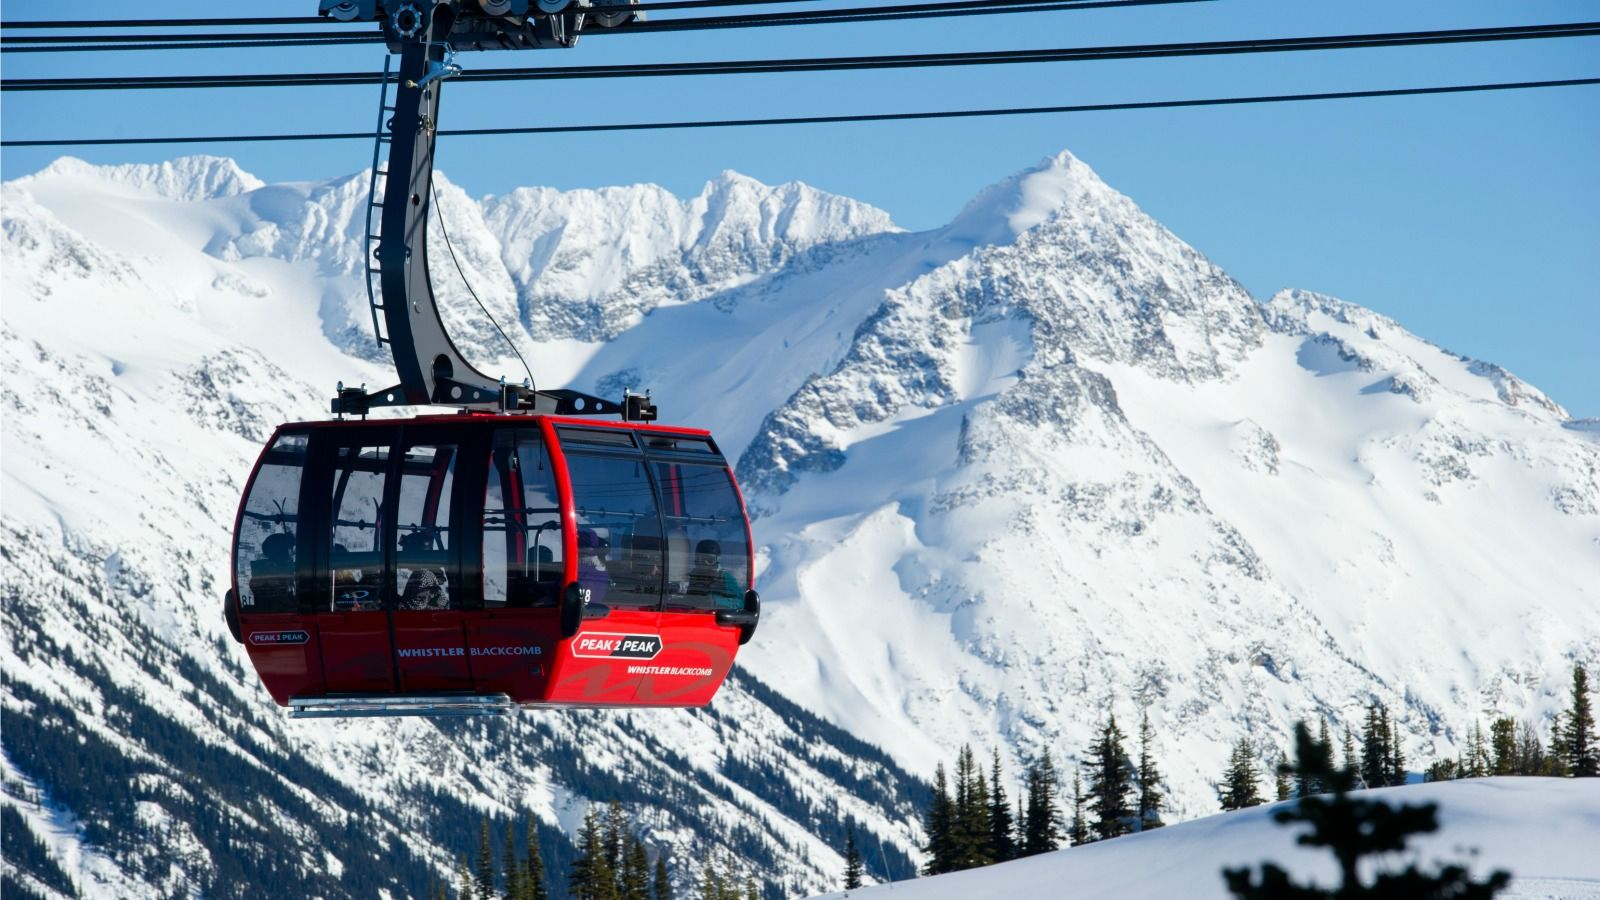 Things to Do in Whistler - Winter - Gondola